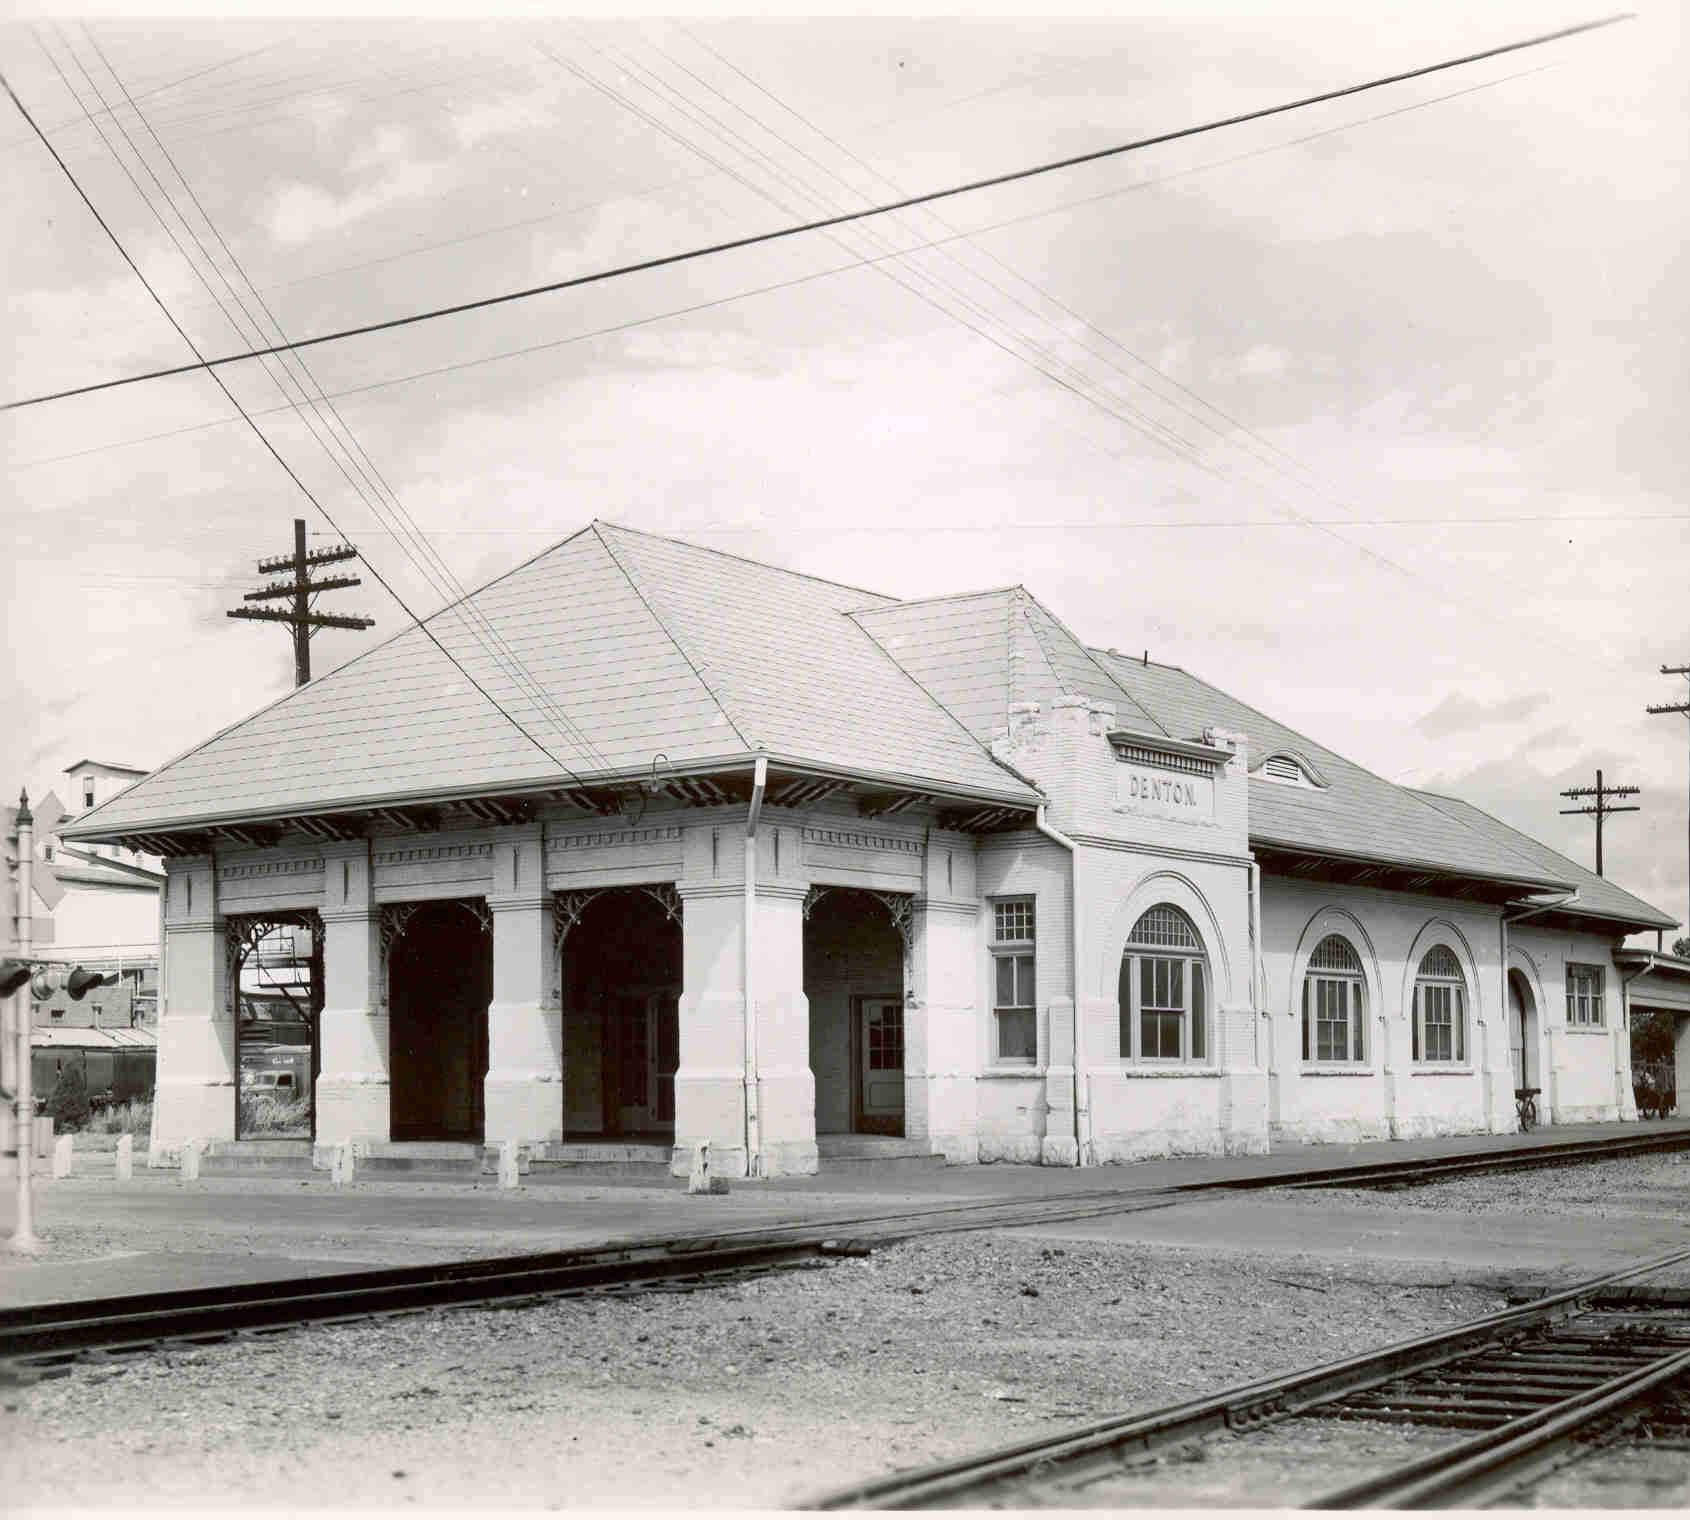 Old Depot in Denton TX and our history with trains Story at